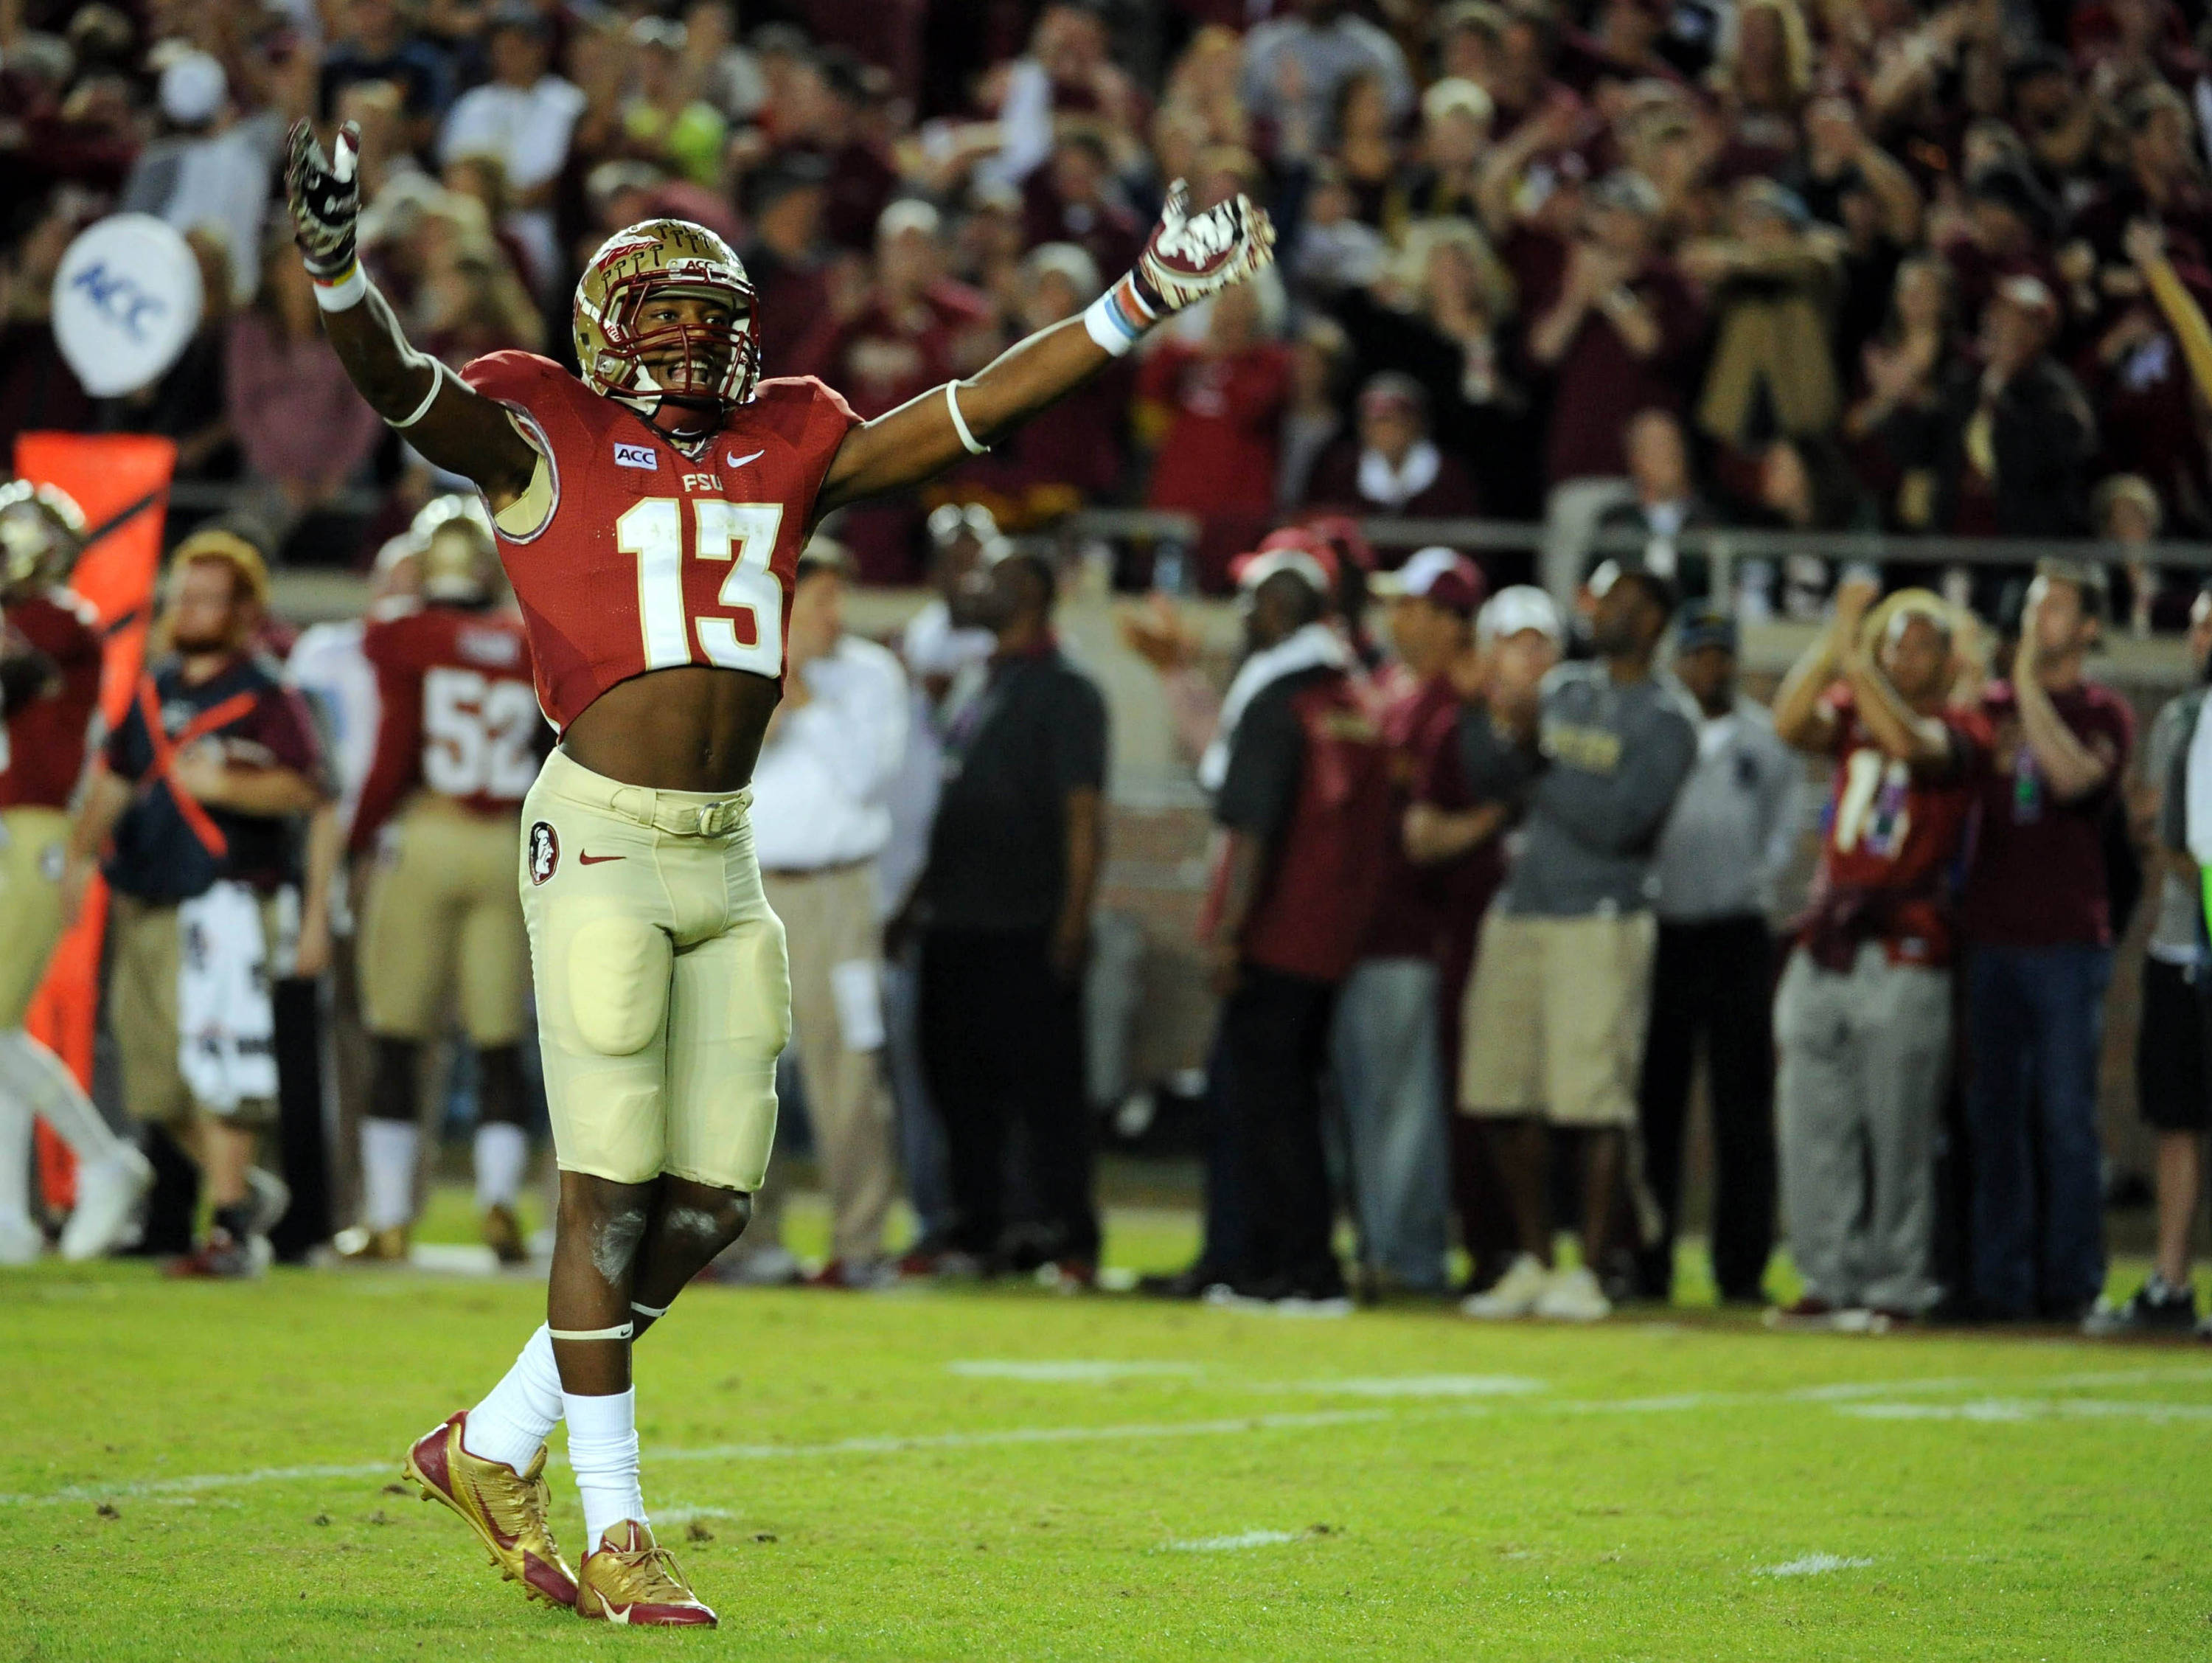 Florida State Seminoles defensive back Jalen Ramsey (13) celebrates after a defensive stop during the game against the Miami Hurricanes at Doak Campbell Stadium. Mandatory Credit: Melina Vastola-USA TODAY Sports